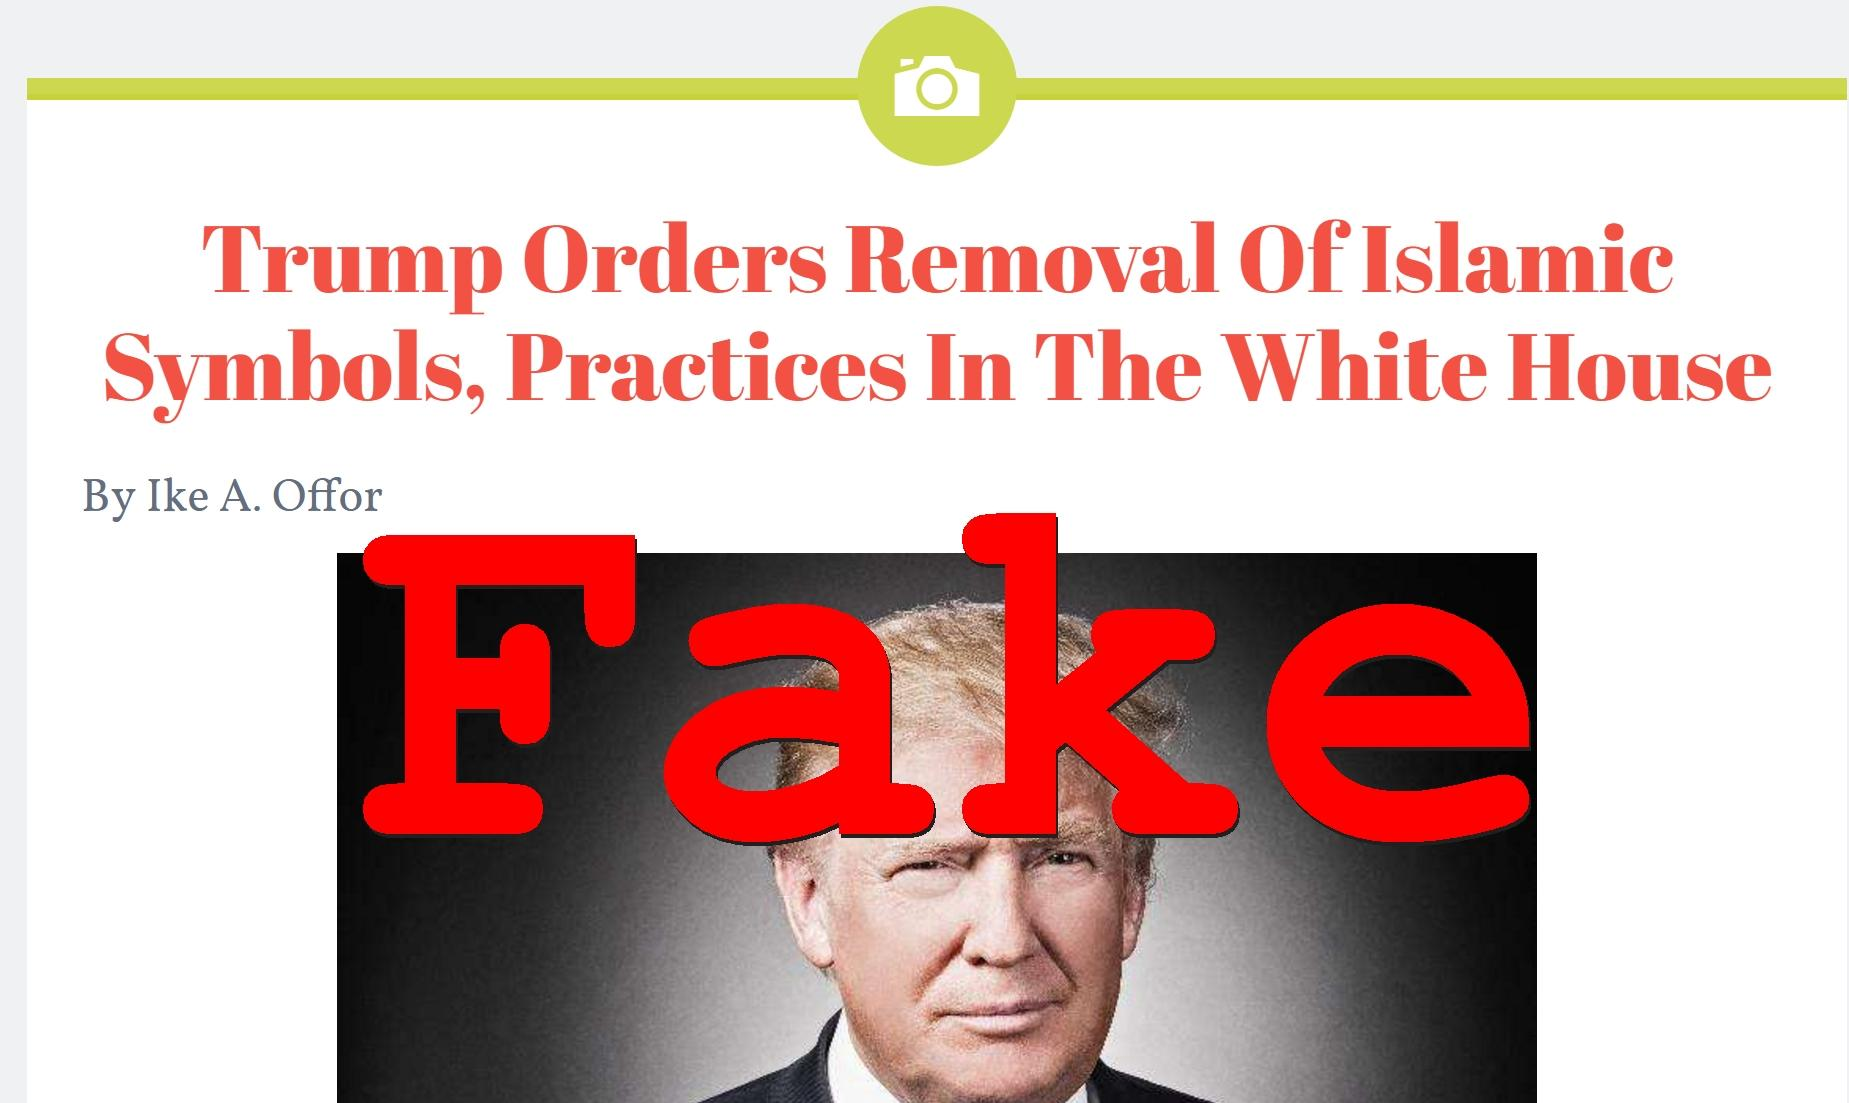 Fake News: Trump DID NOT Order Removal Of Islamic Symbols, Practices In The White House